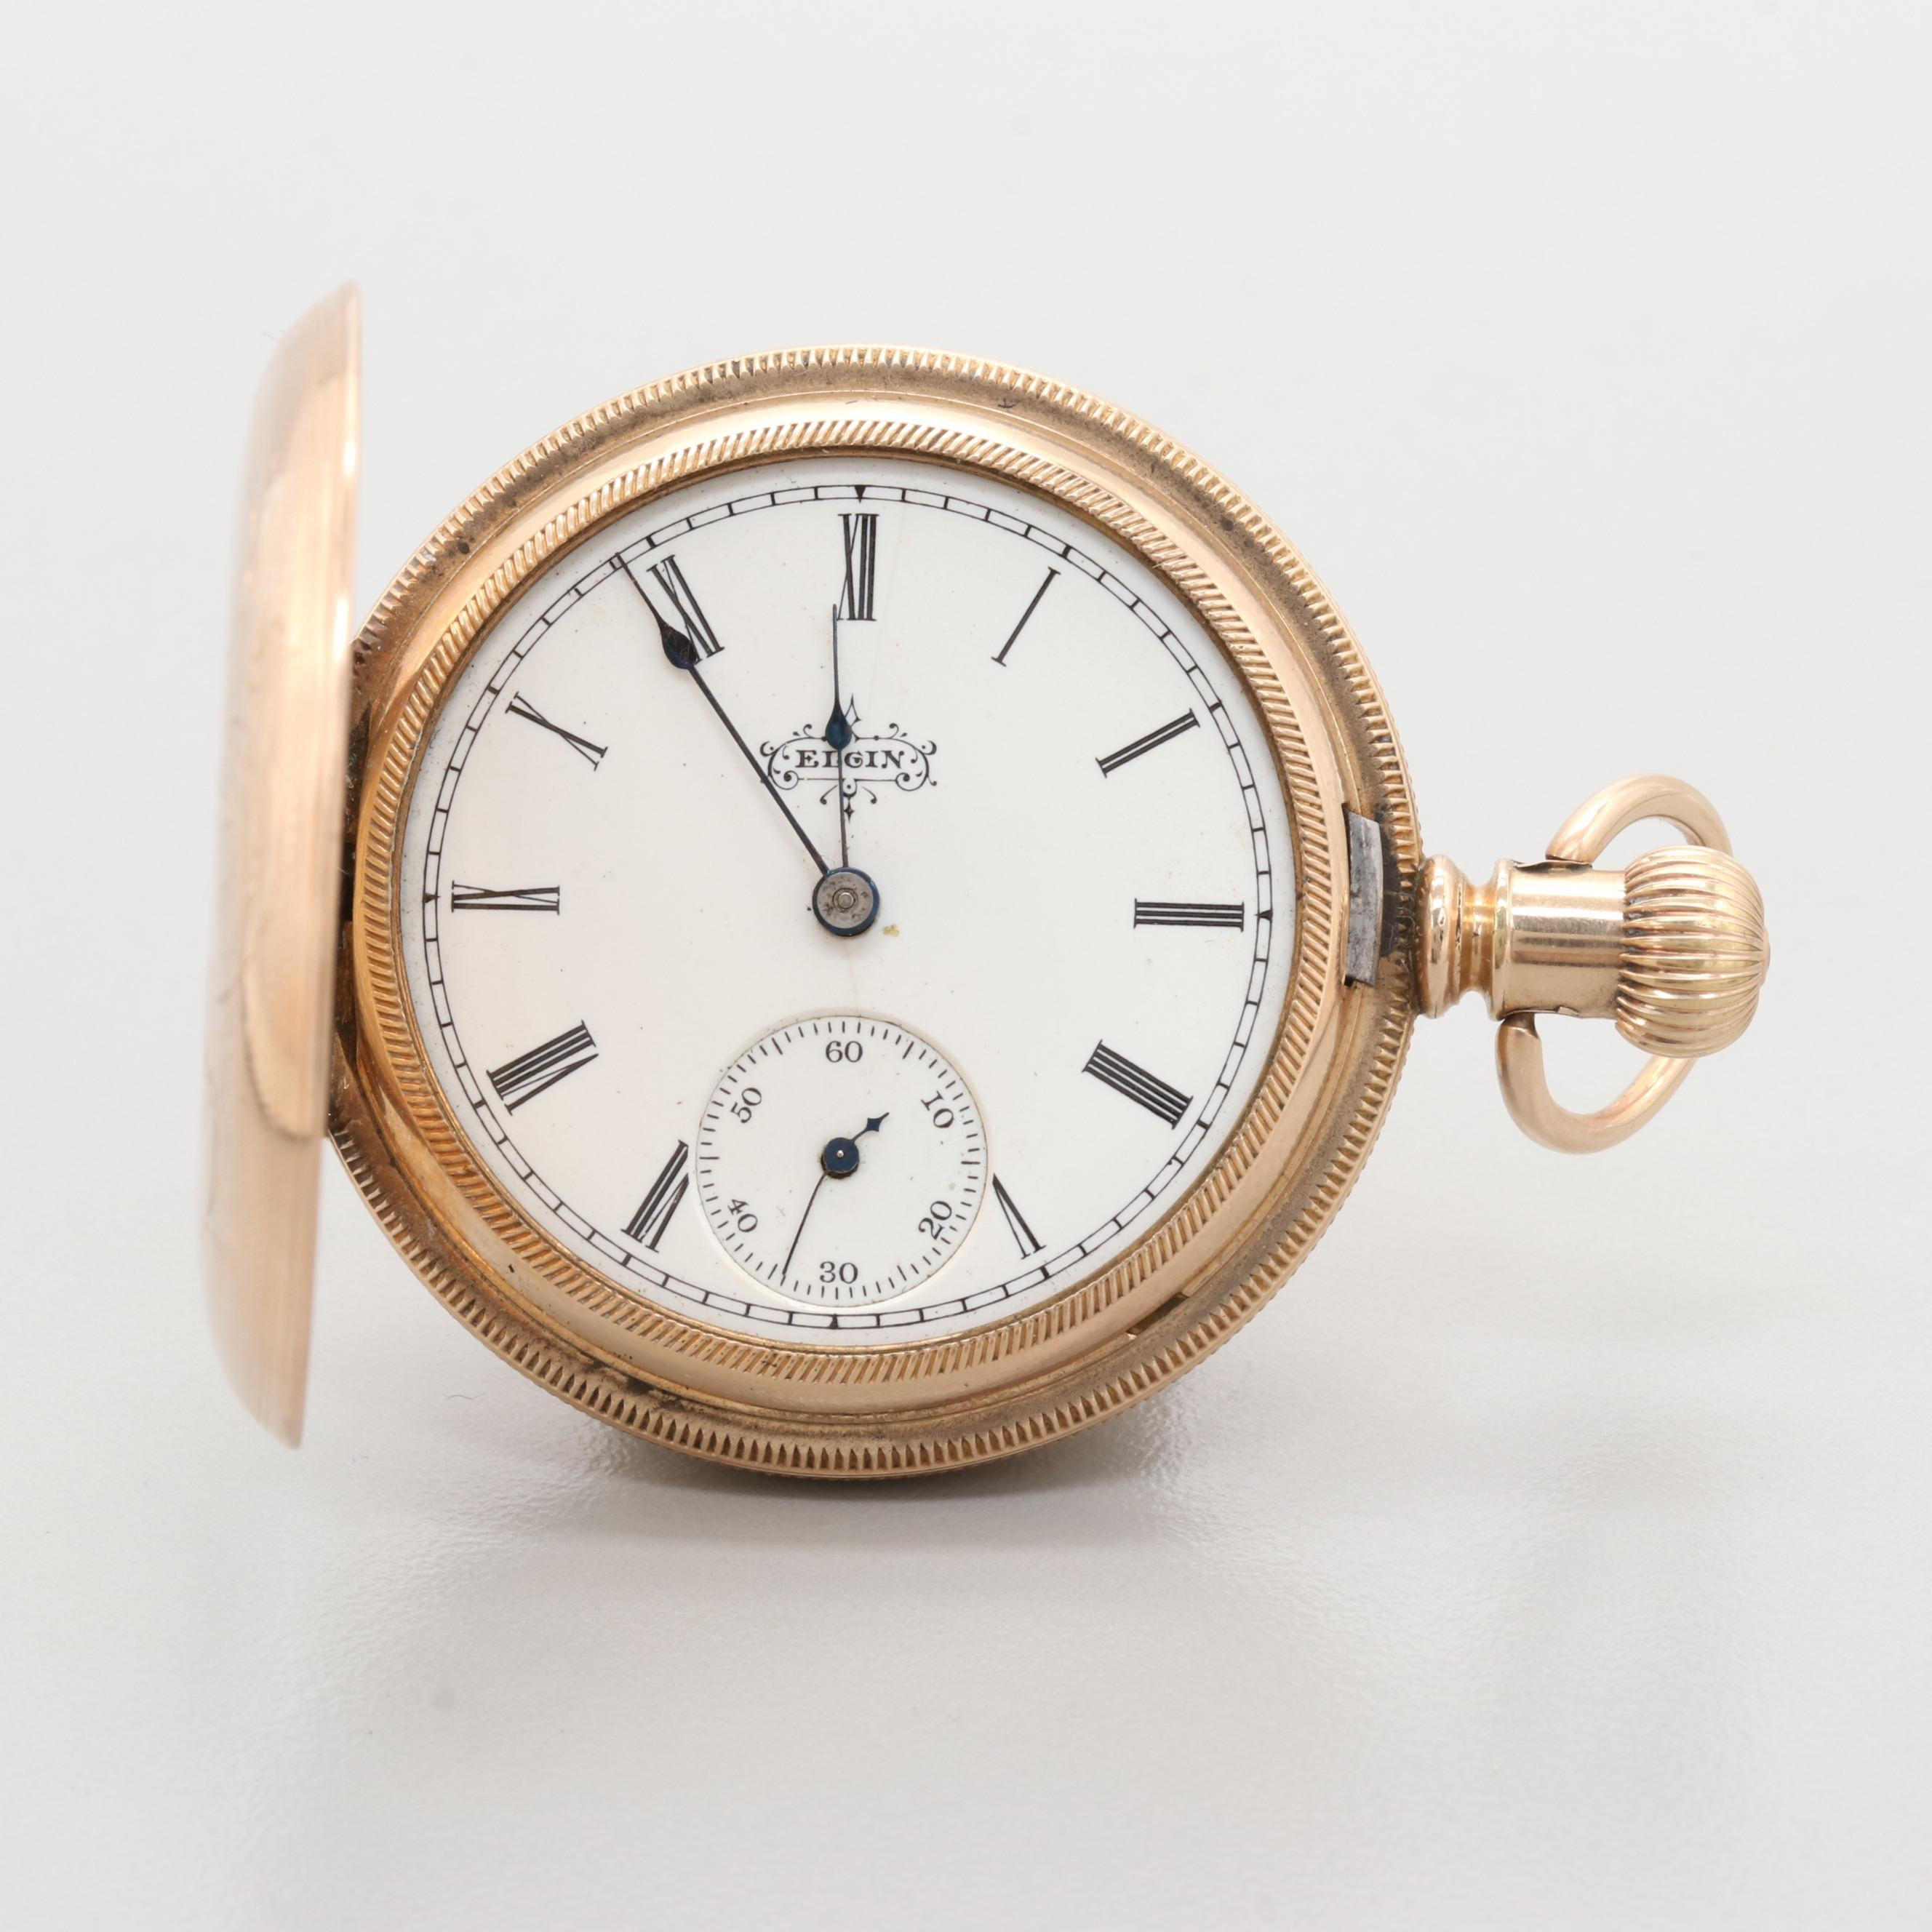 Elgin Gold Filled Hunting Case Pocket Watch, Circa 1896